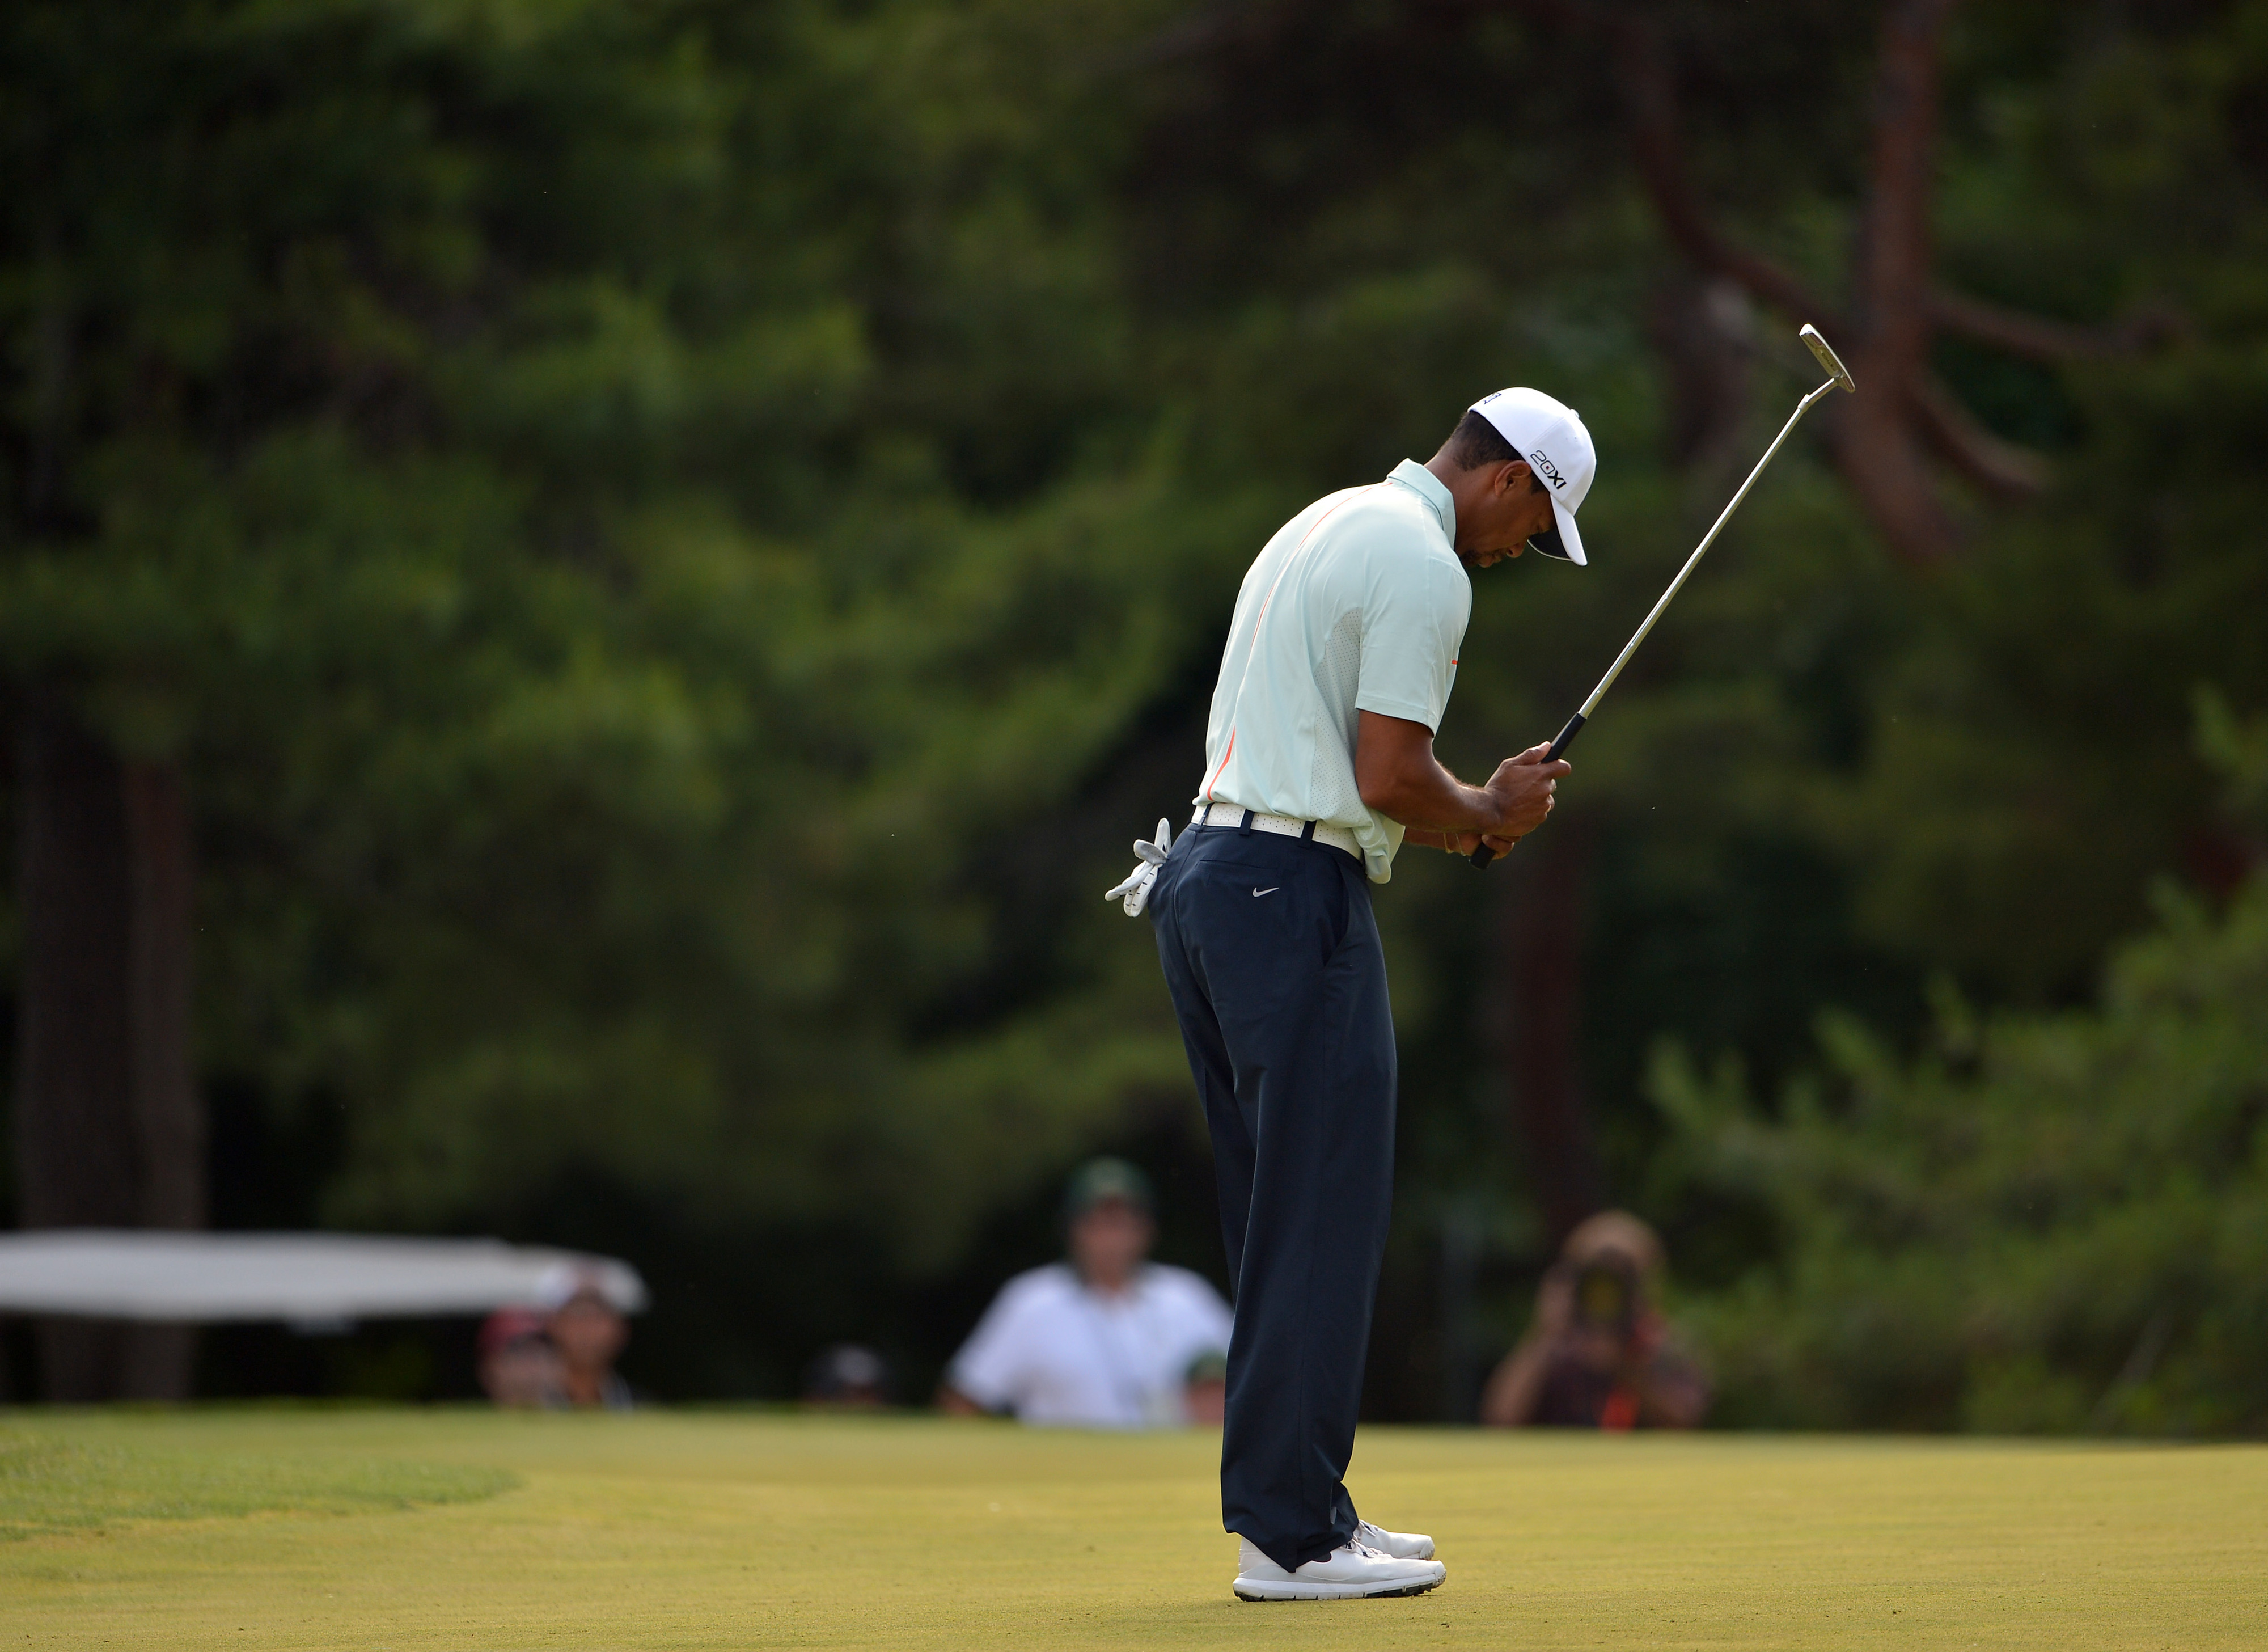 Tiger Woods hopes elbow will be 'good enough' to play British Open